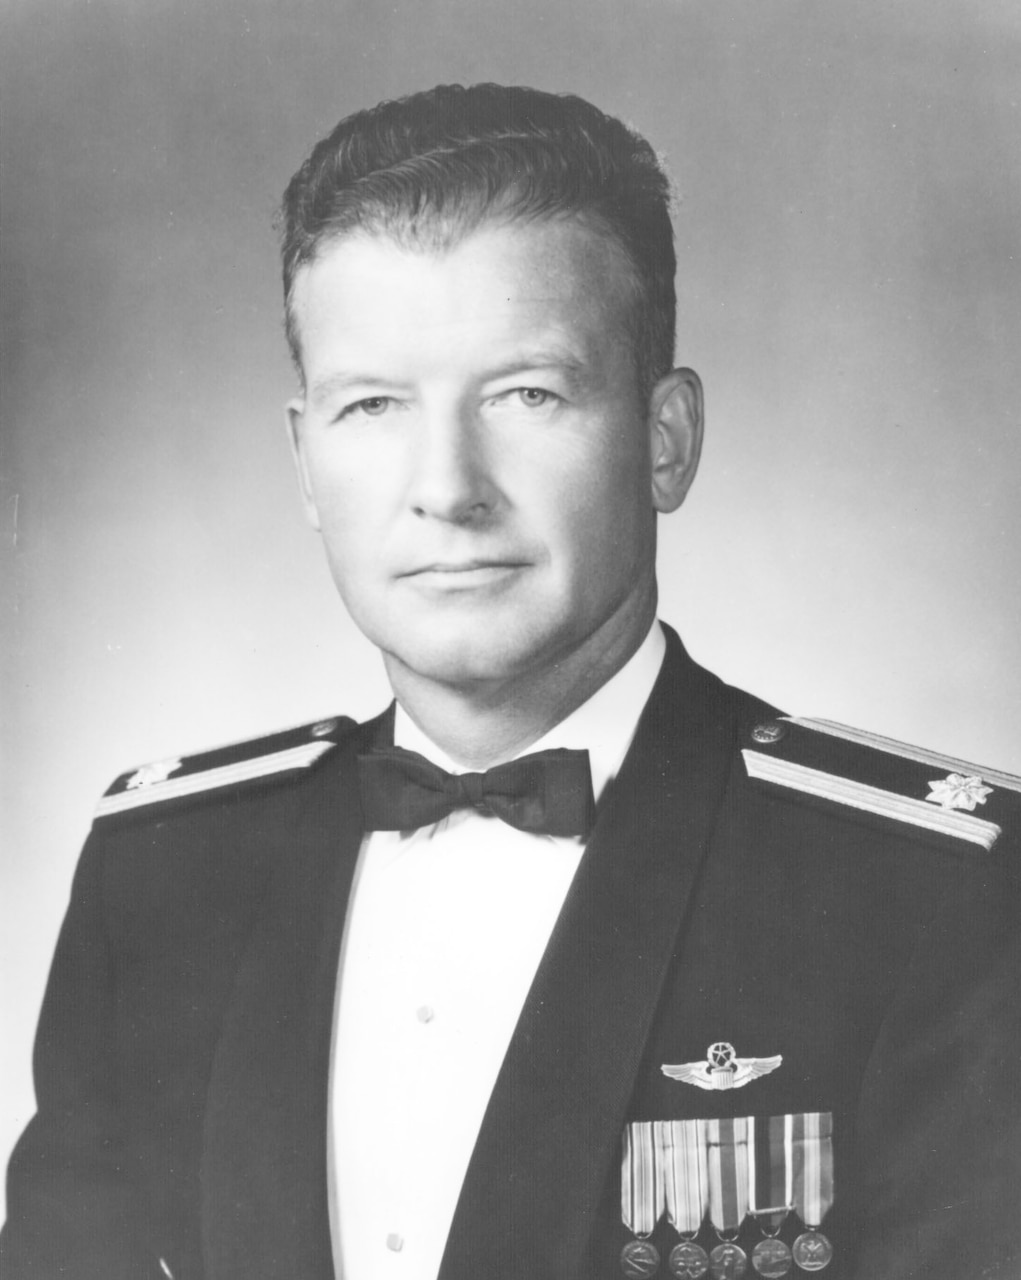 Headshot of a man wearing formal military attire.